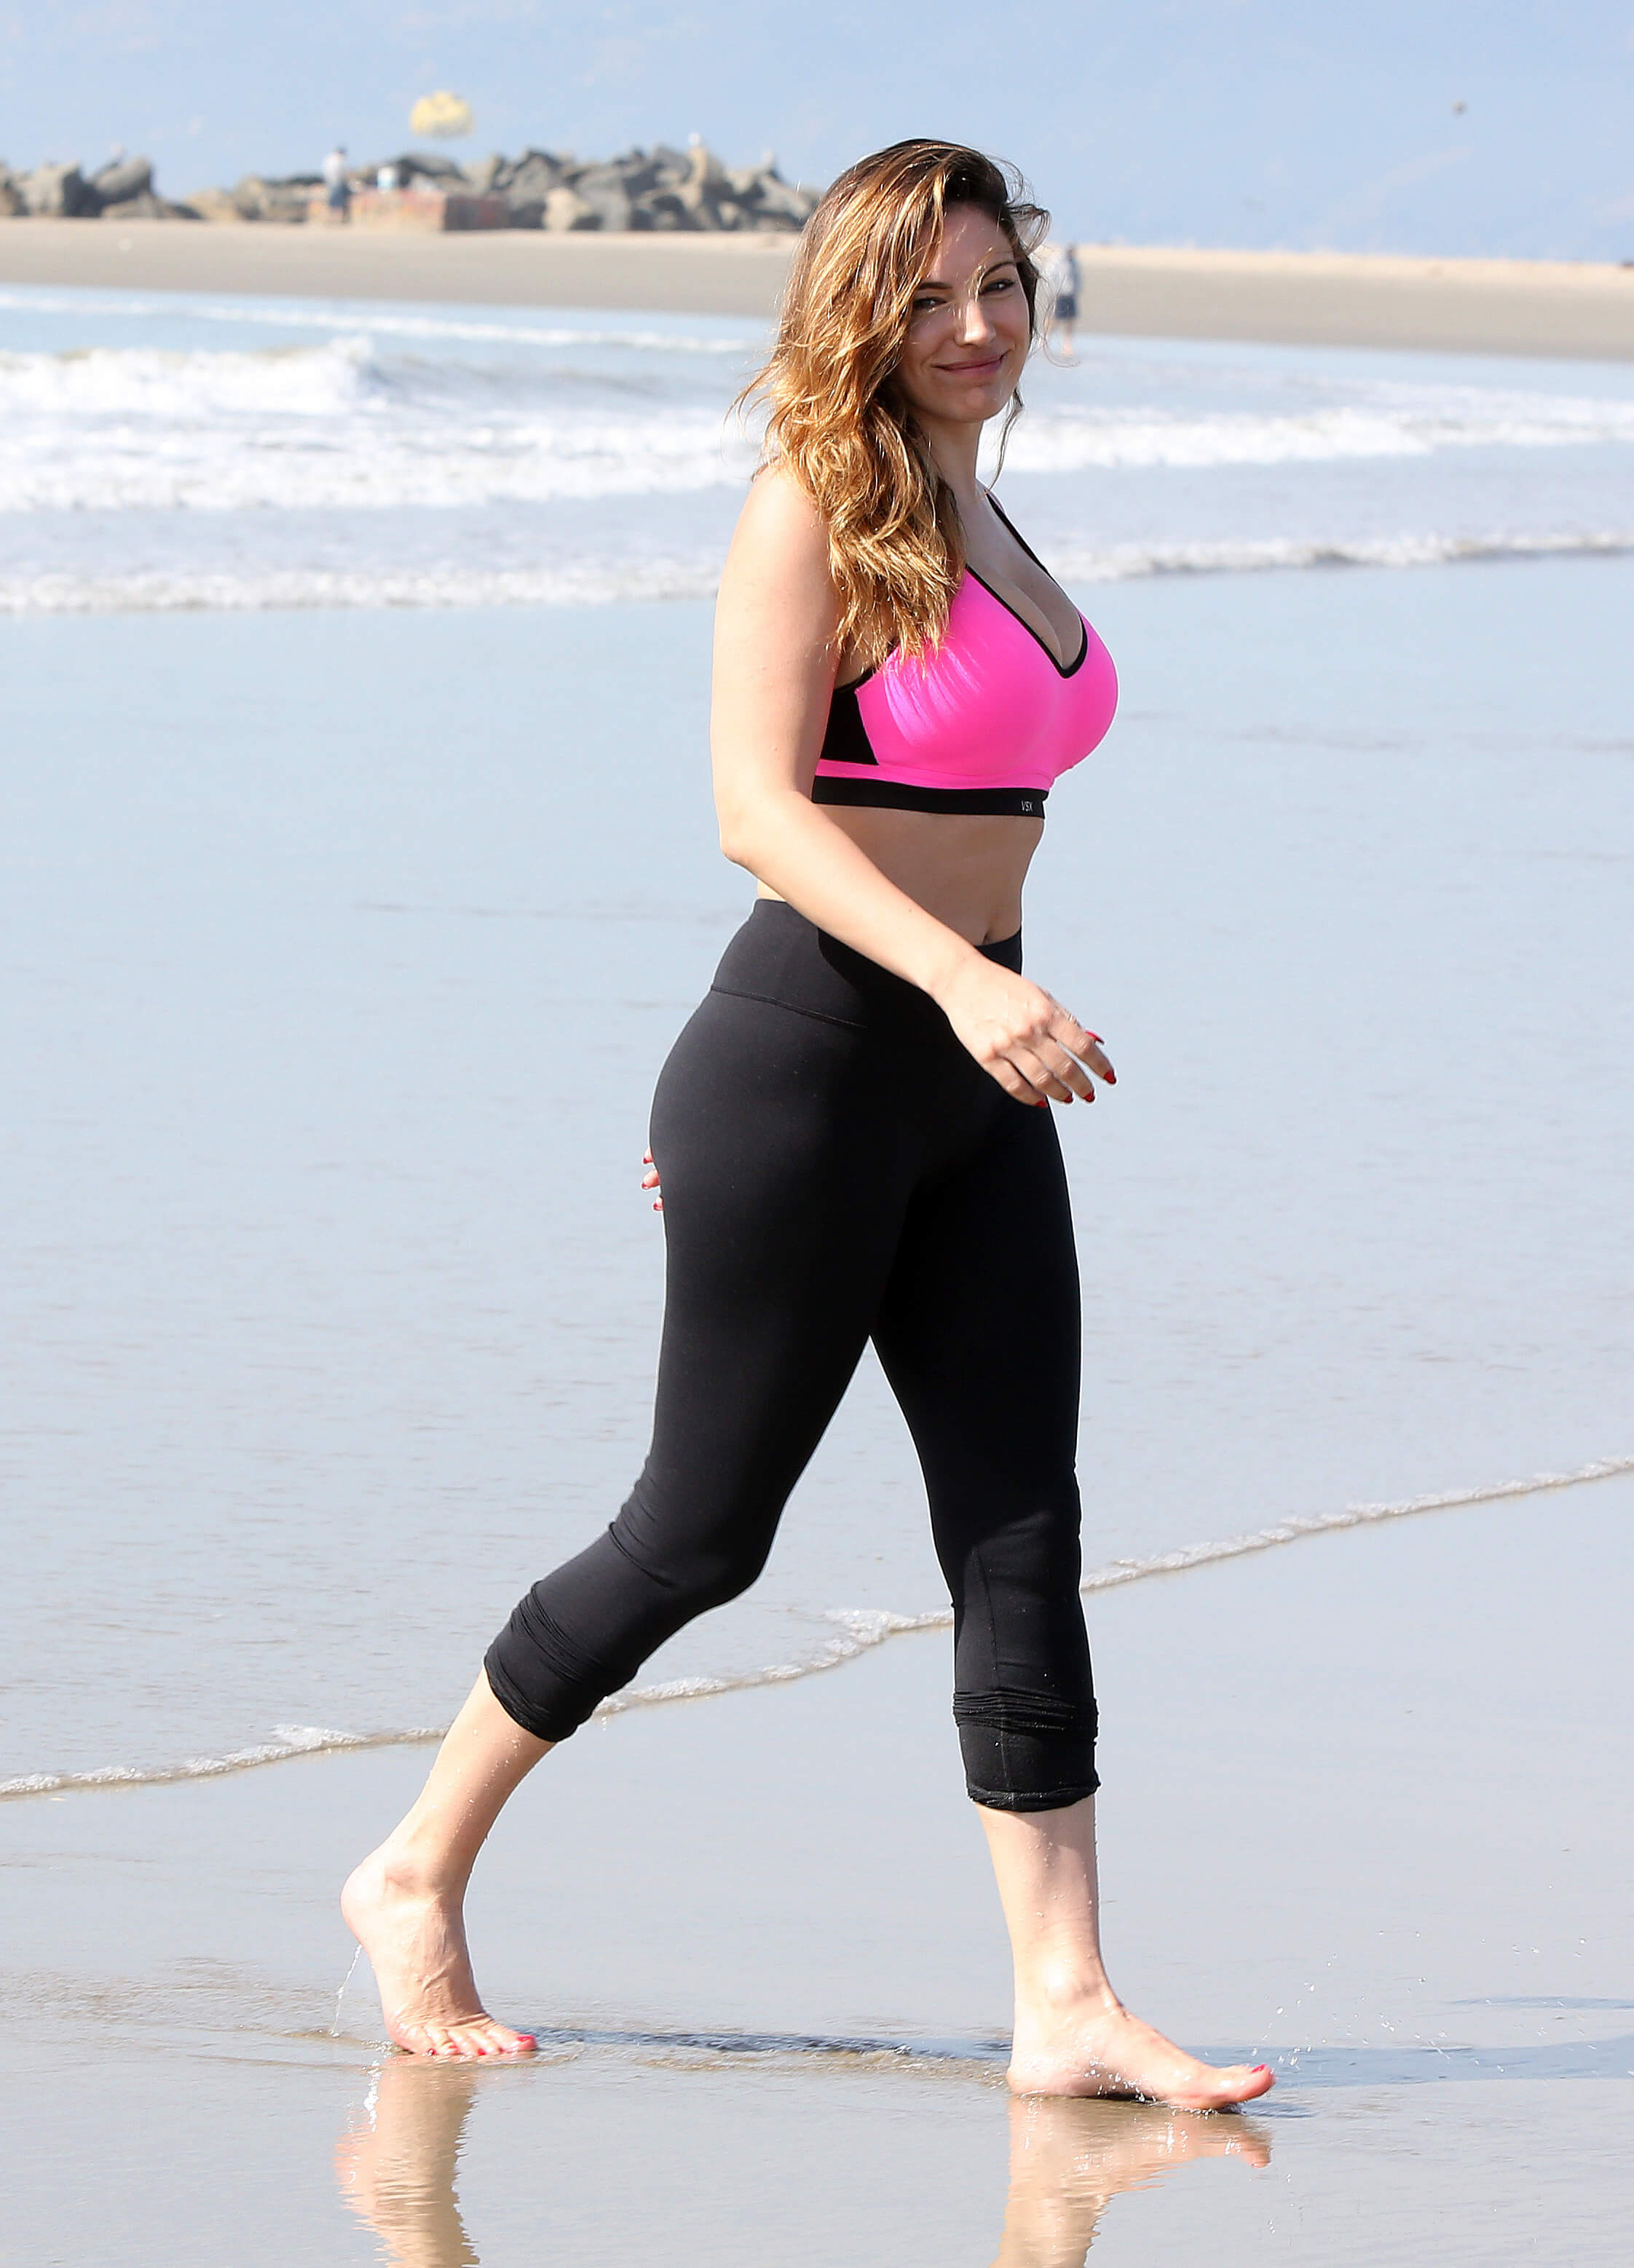 Kelly-Brook beach pictures